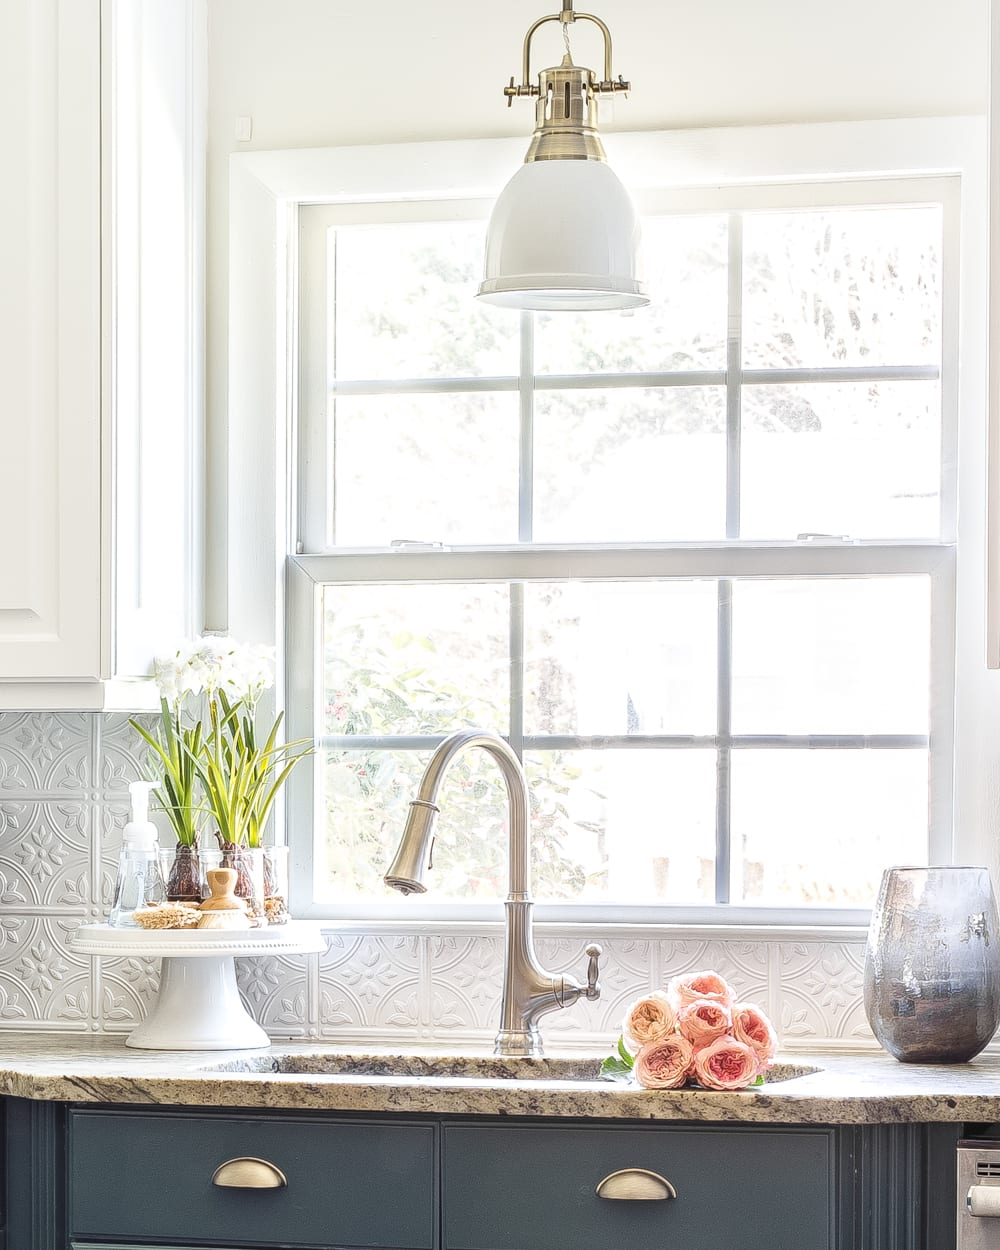 How to Disguise the Ugly Stuff in Your Home   Put scrub brushes and soaps on a cake stand beside the kitchen sink.